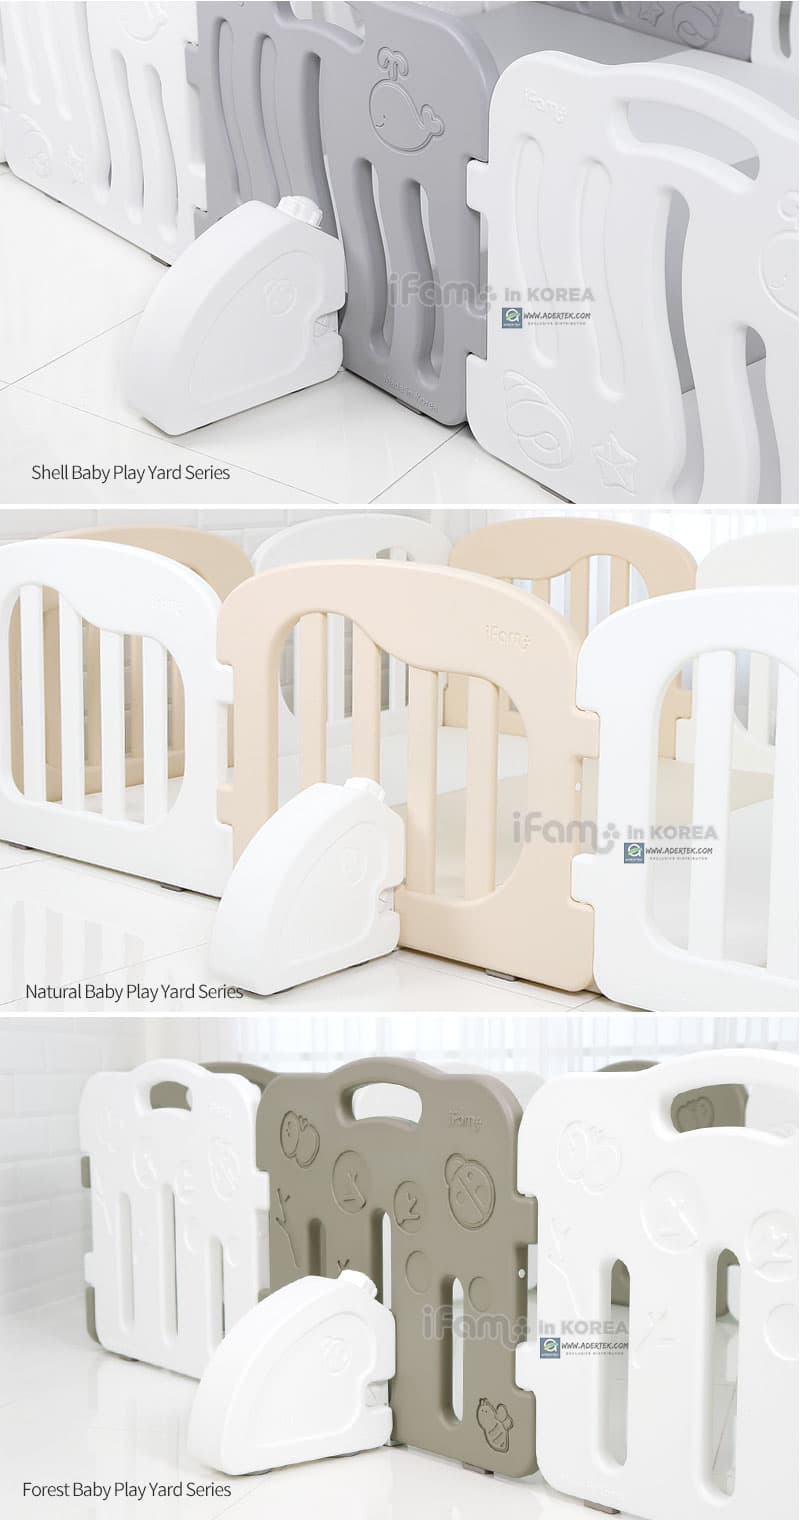 Use it together with any IFAM baby play yards easily